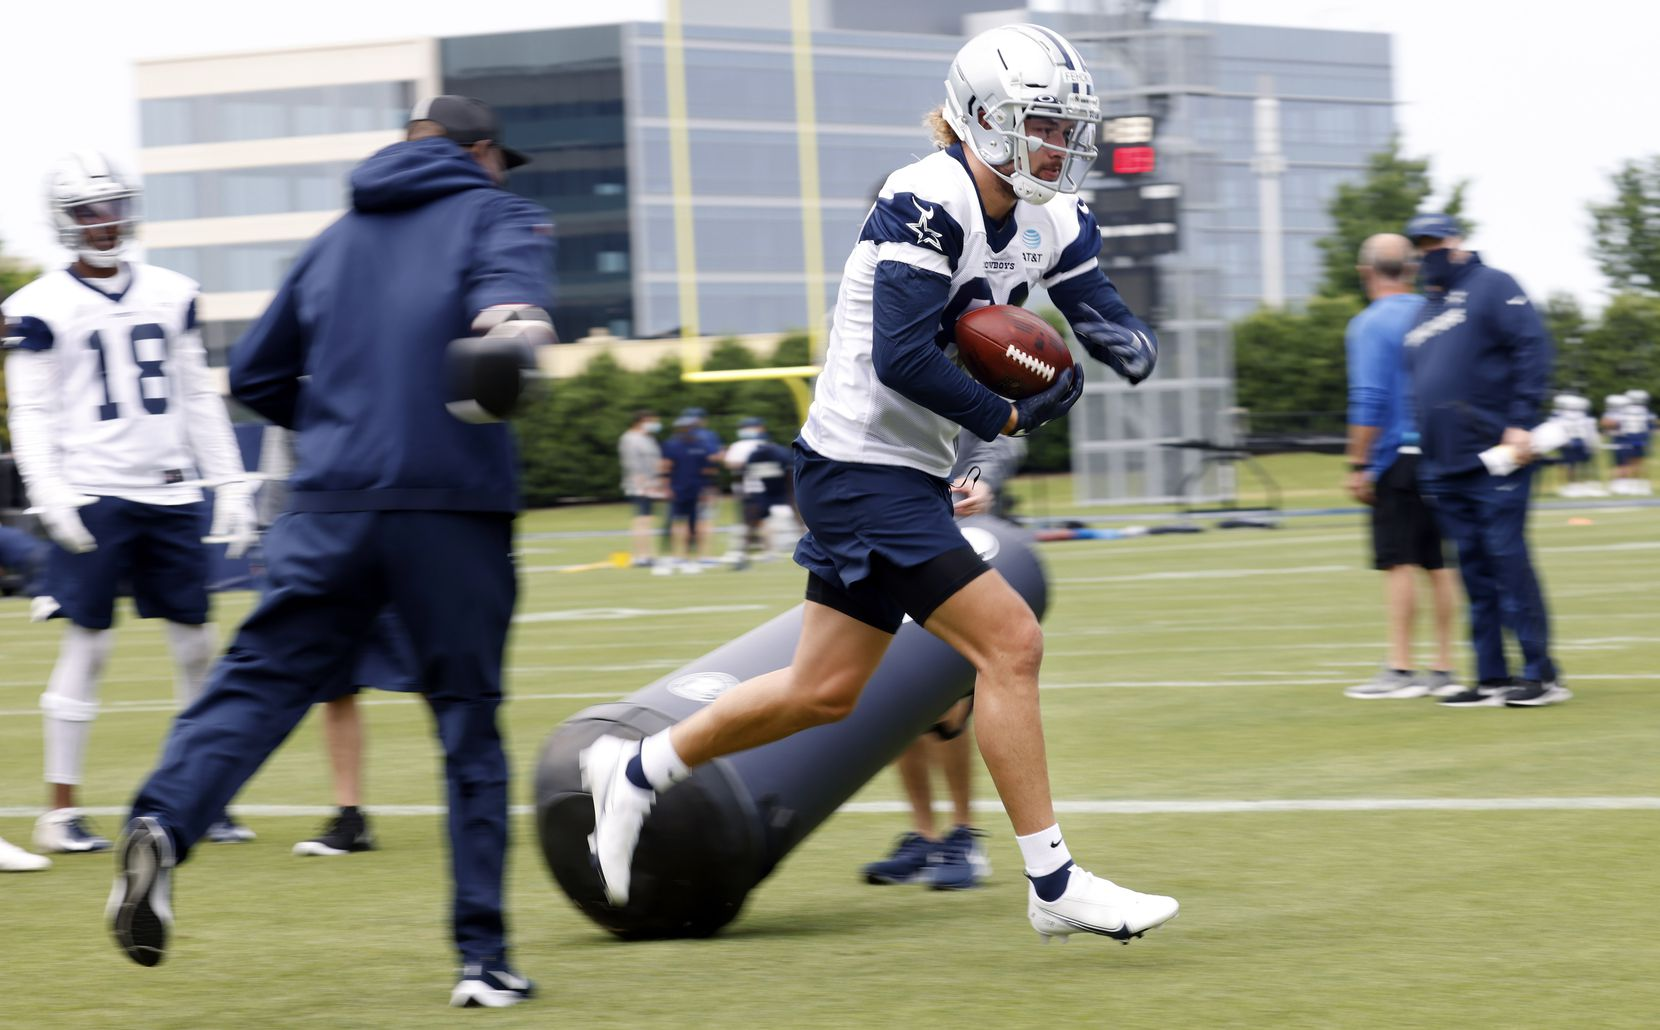 Dallas Cowboys rookie wide receiver Simi Fehoko (81) carries the ball during a rookie minicamp drill at the The Star in Frisco, Texas, Friday, May 14, 2021. (Tom Fox/The Dallas Morning News)